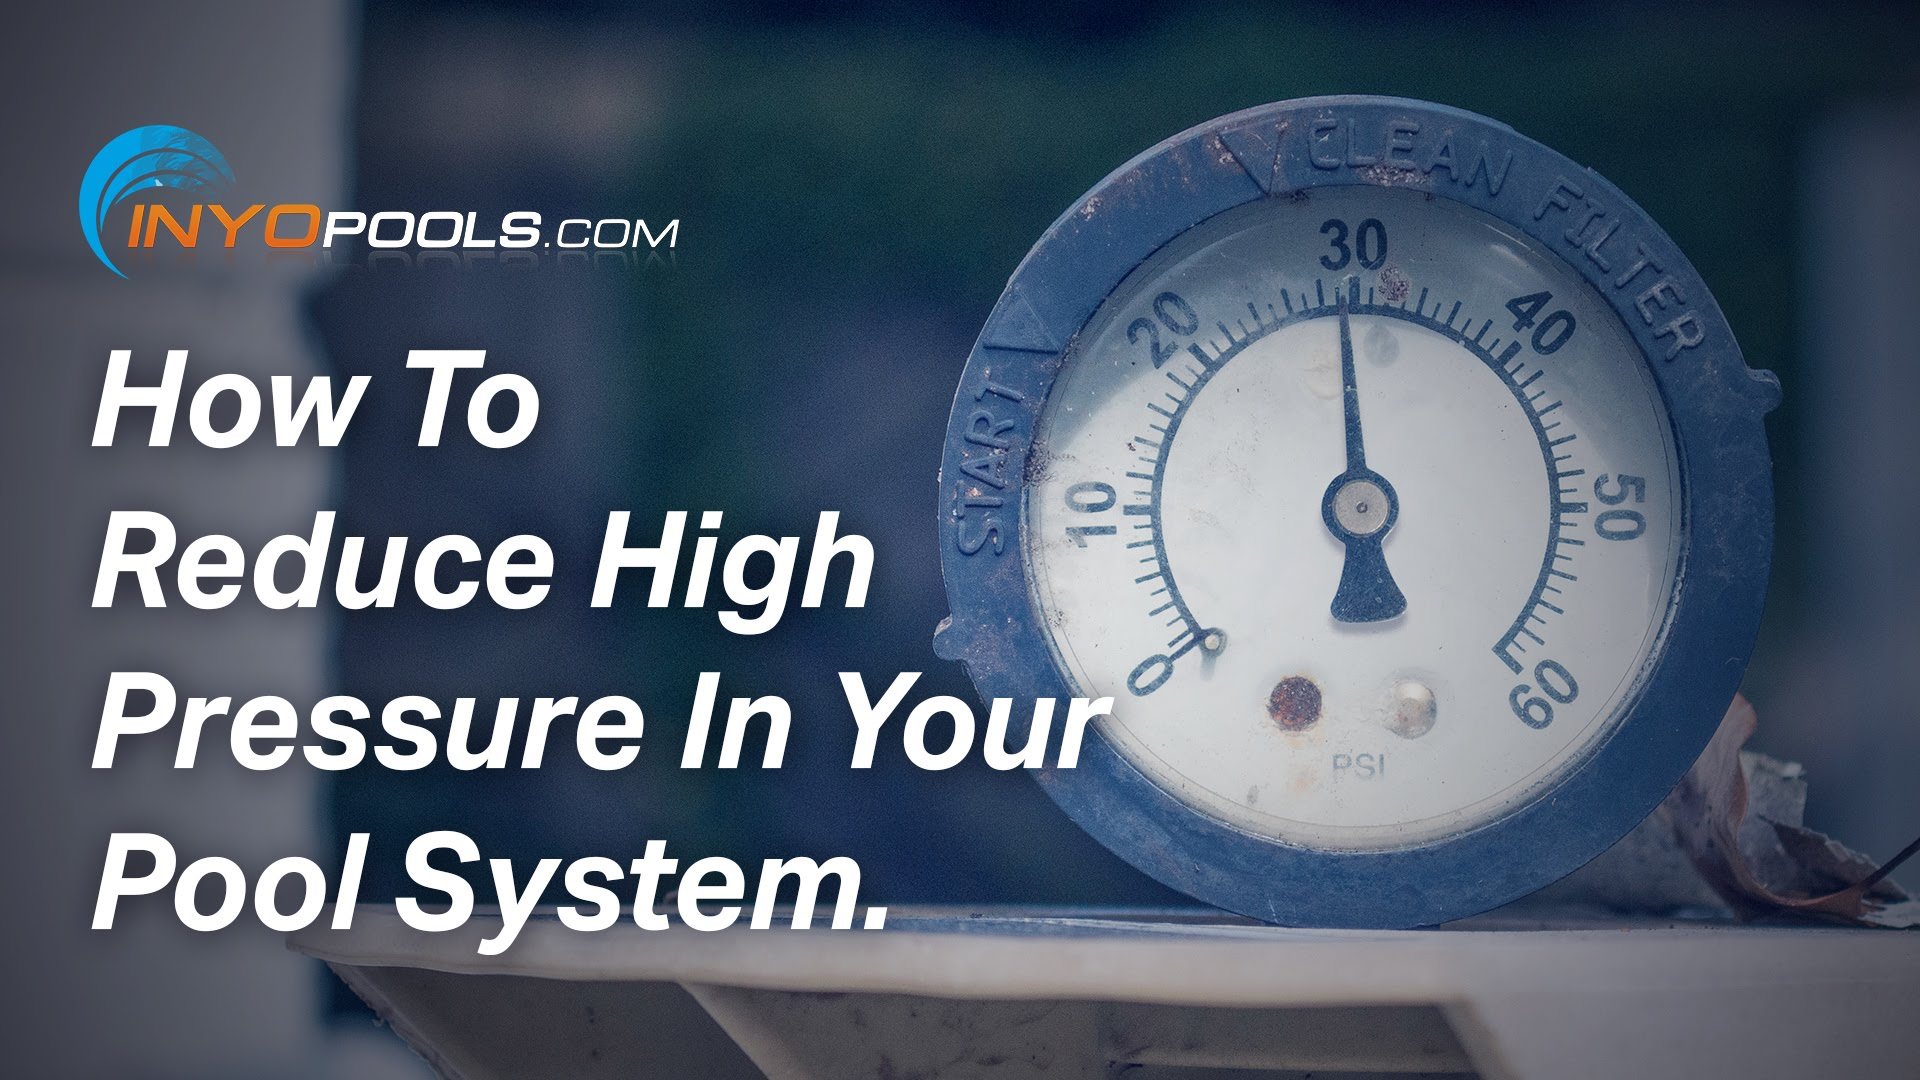 Reducing High Pressure In Your Pool System Inyopools Com